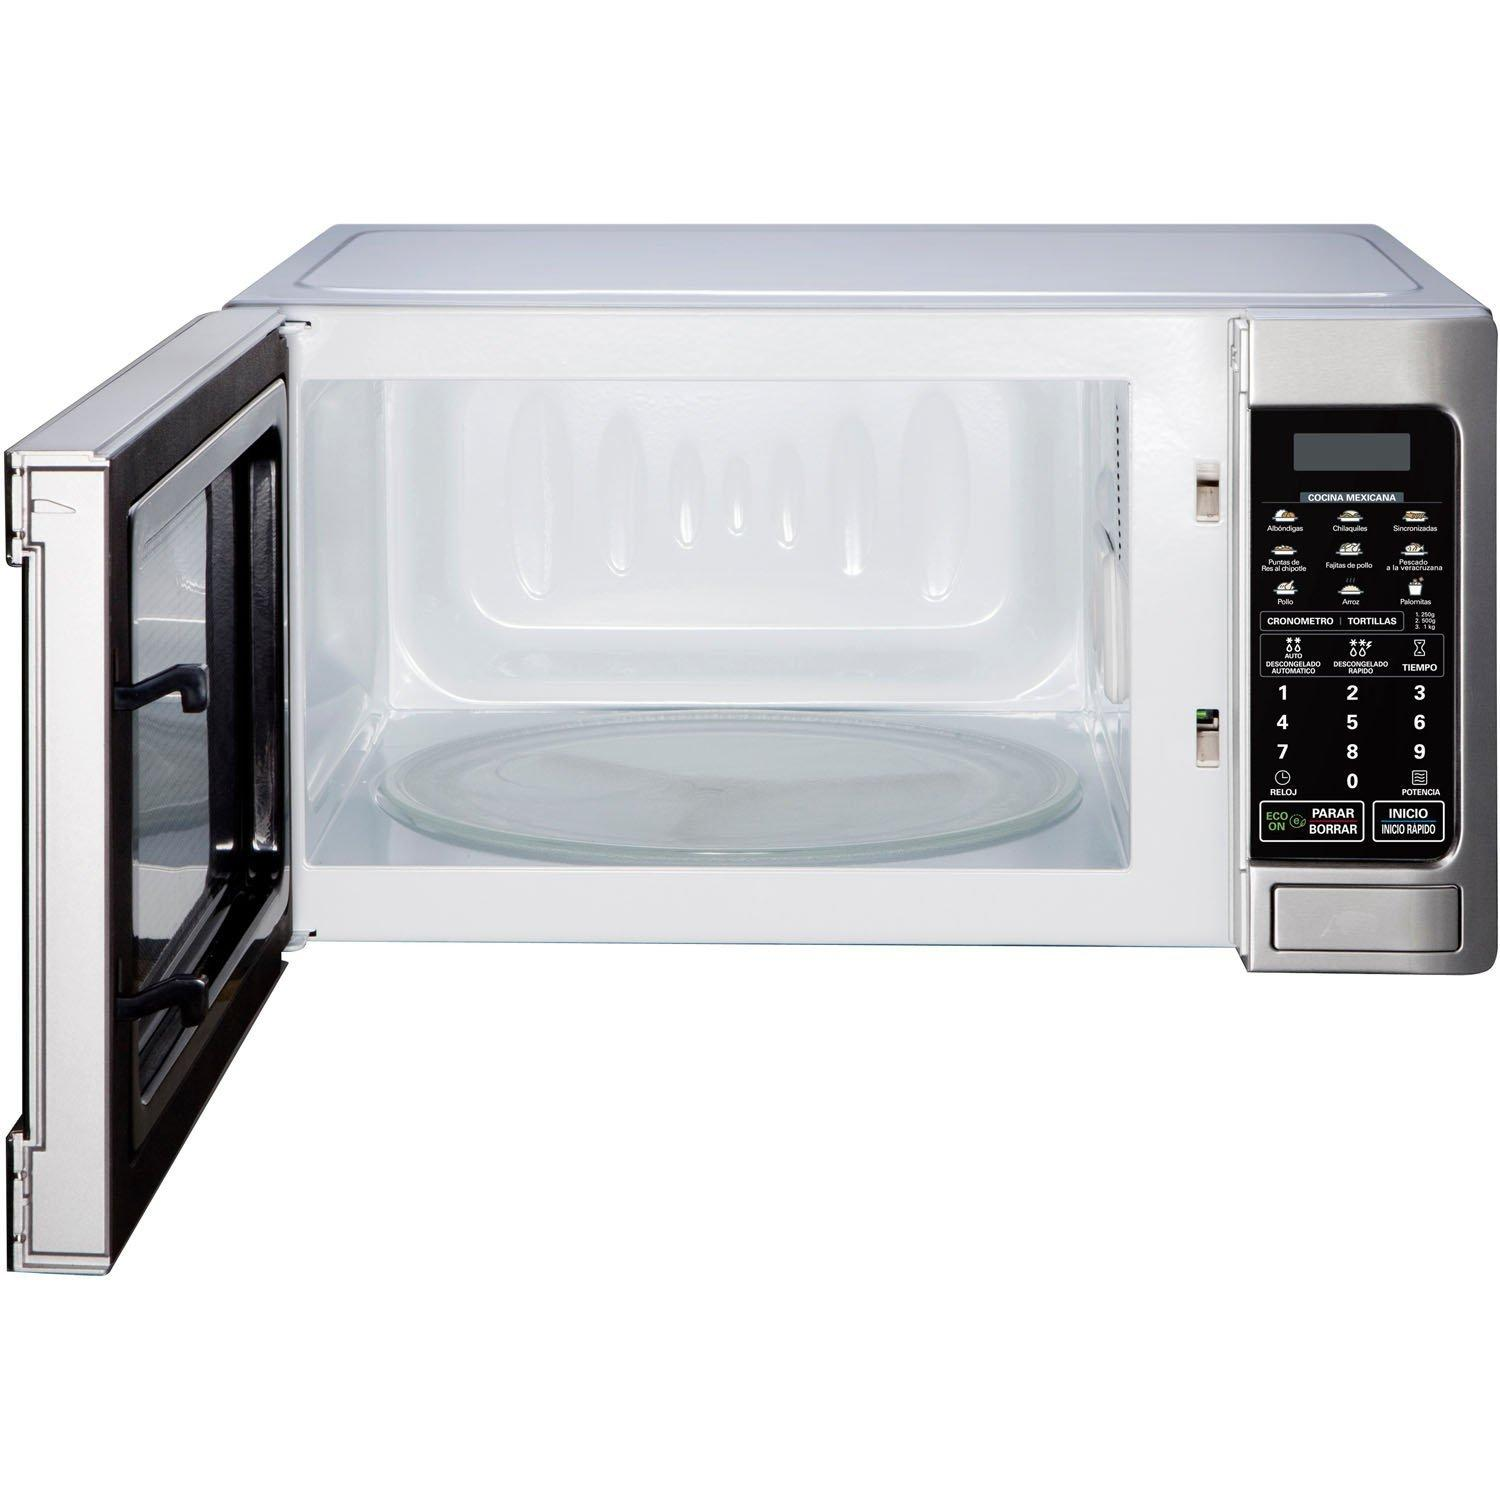 Lg Countertop Convection Oven : LCS1112ST Lg lcs1112st Countertop Microwaves Stainless Steel